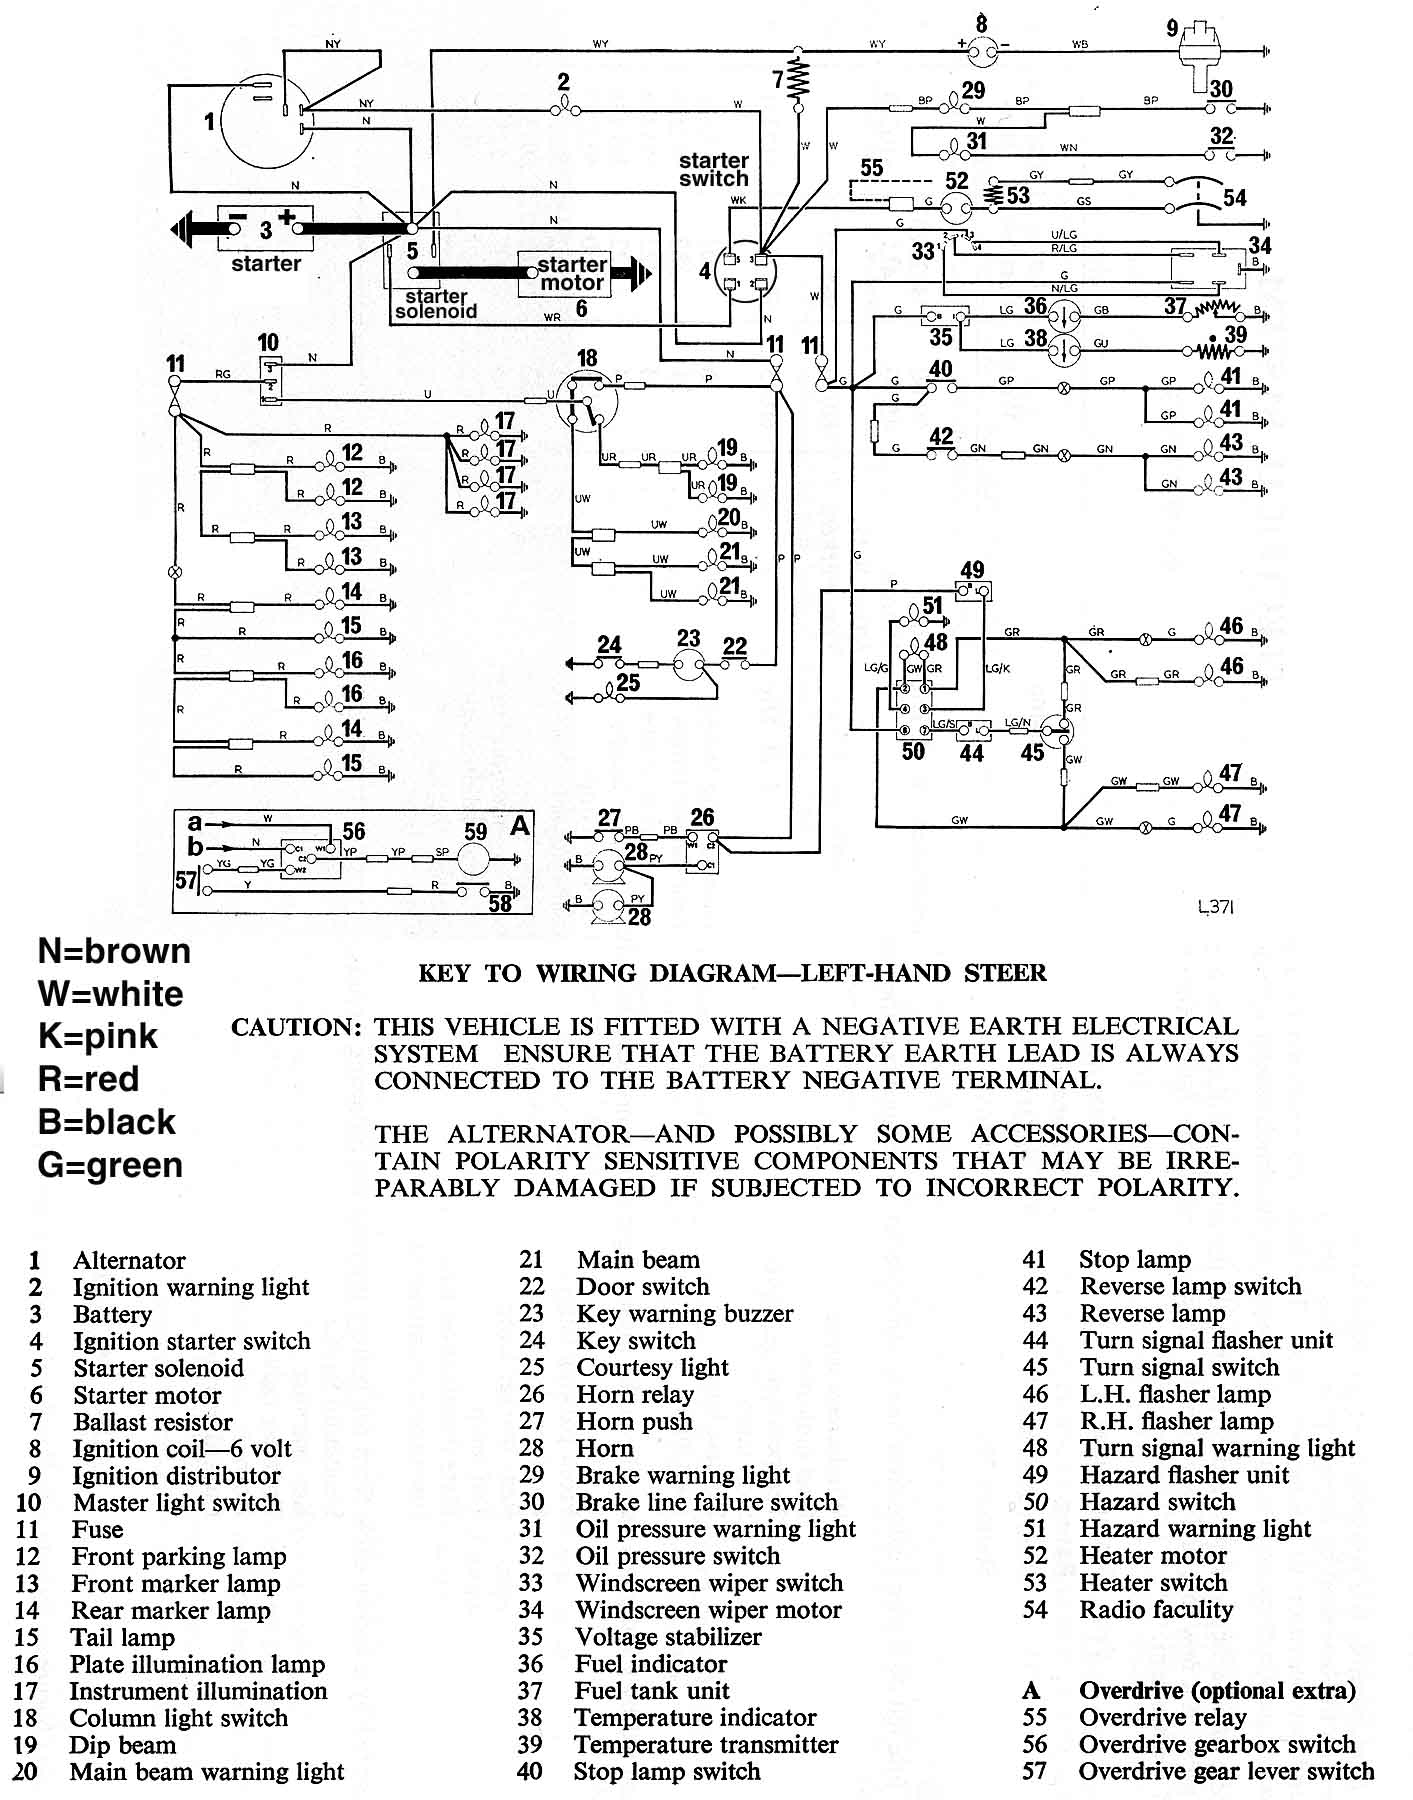 Vdo Oil Pressure Sending Unit Wiring Diagram - Wiring Diagrams ...